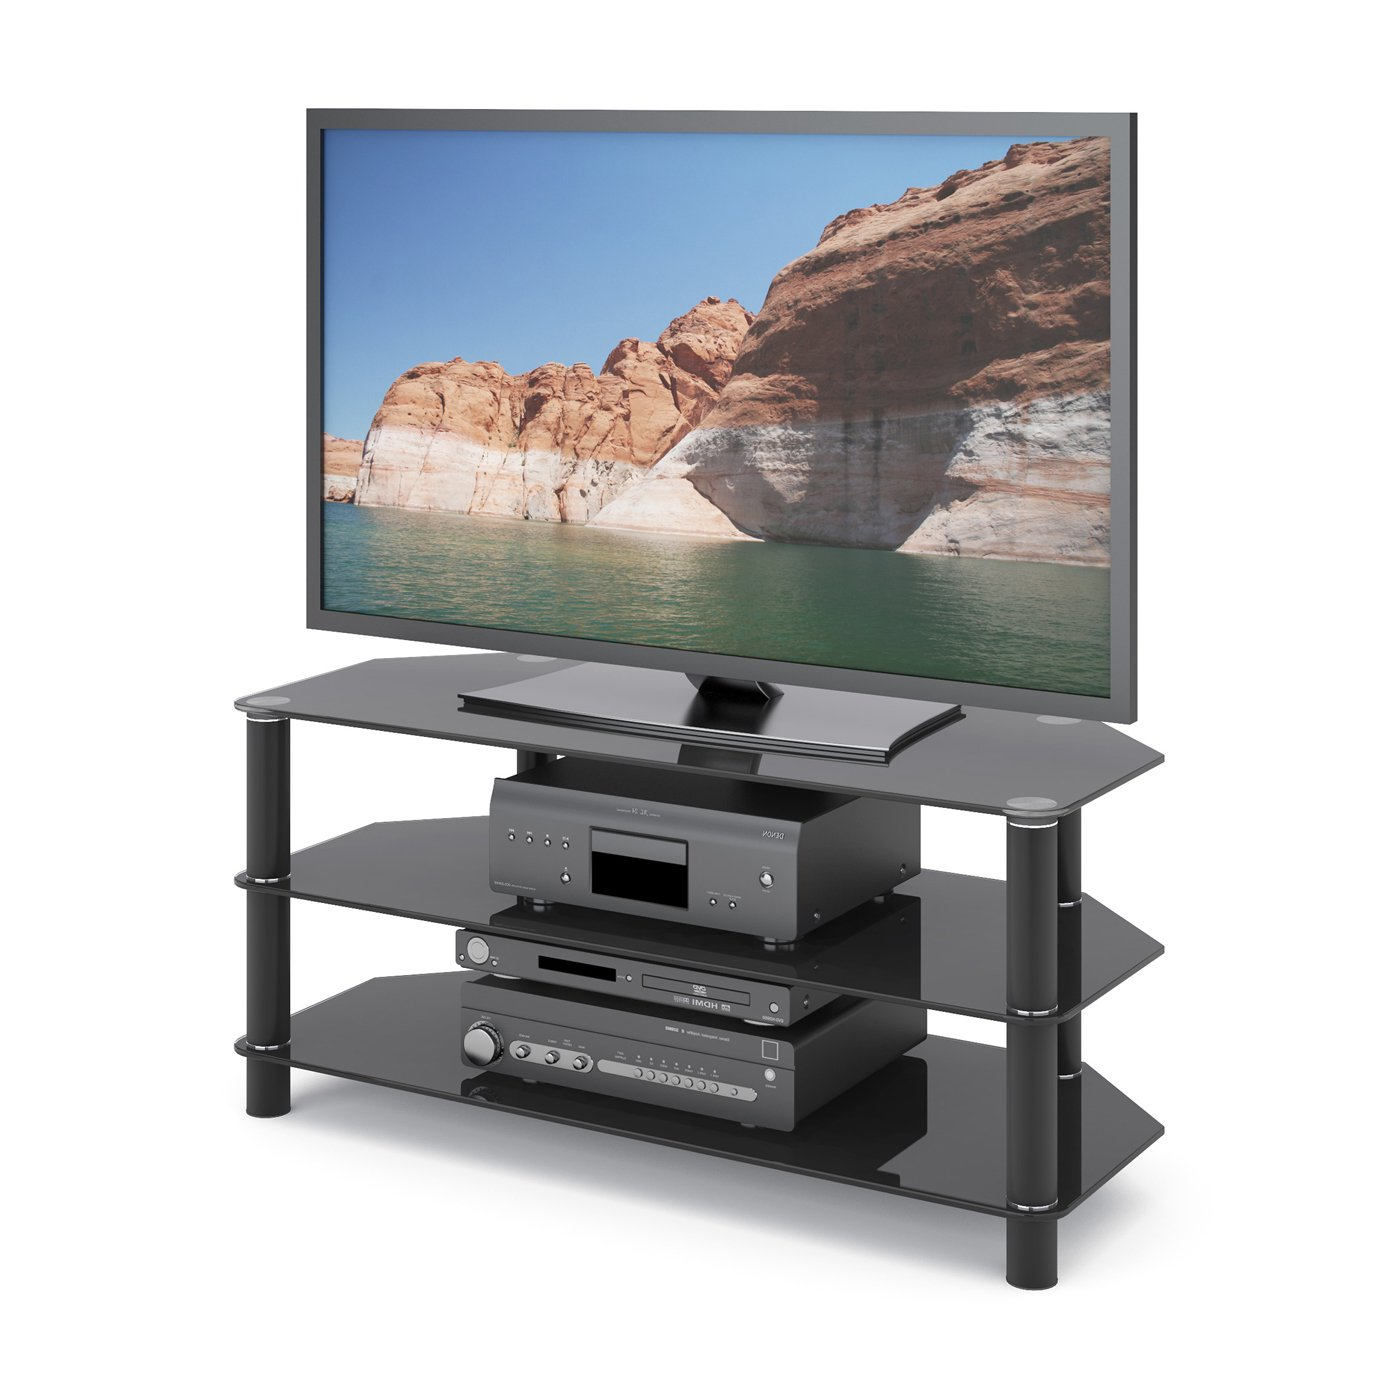 Tv Stands Over Cable Box Pertaining To Well Liked Stand For Cable Box And Dvd Player Wall Unit Entertainment Shelf (View 3 of 20)